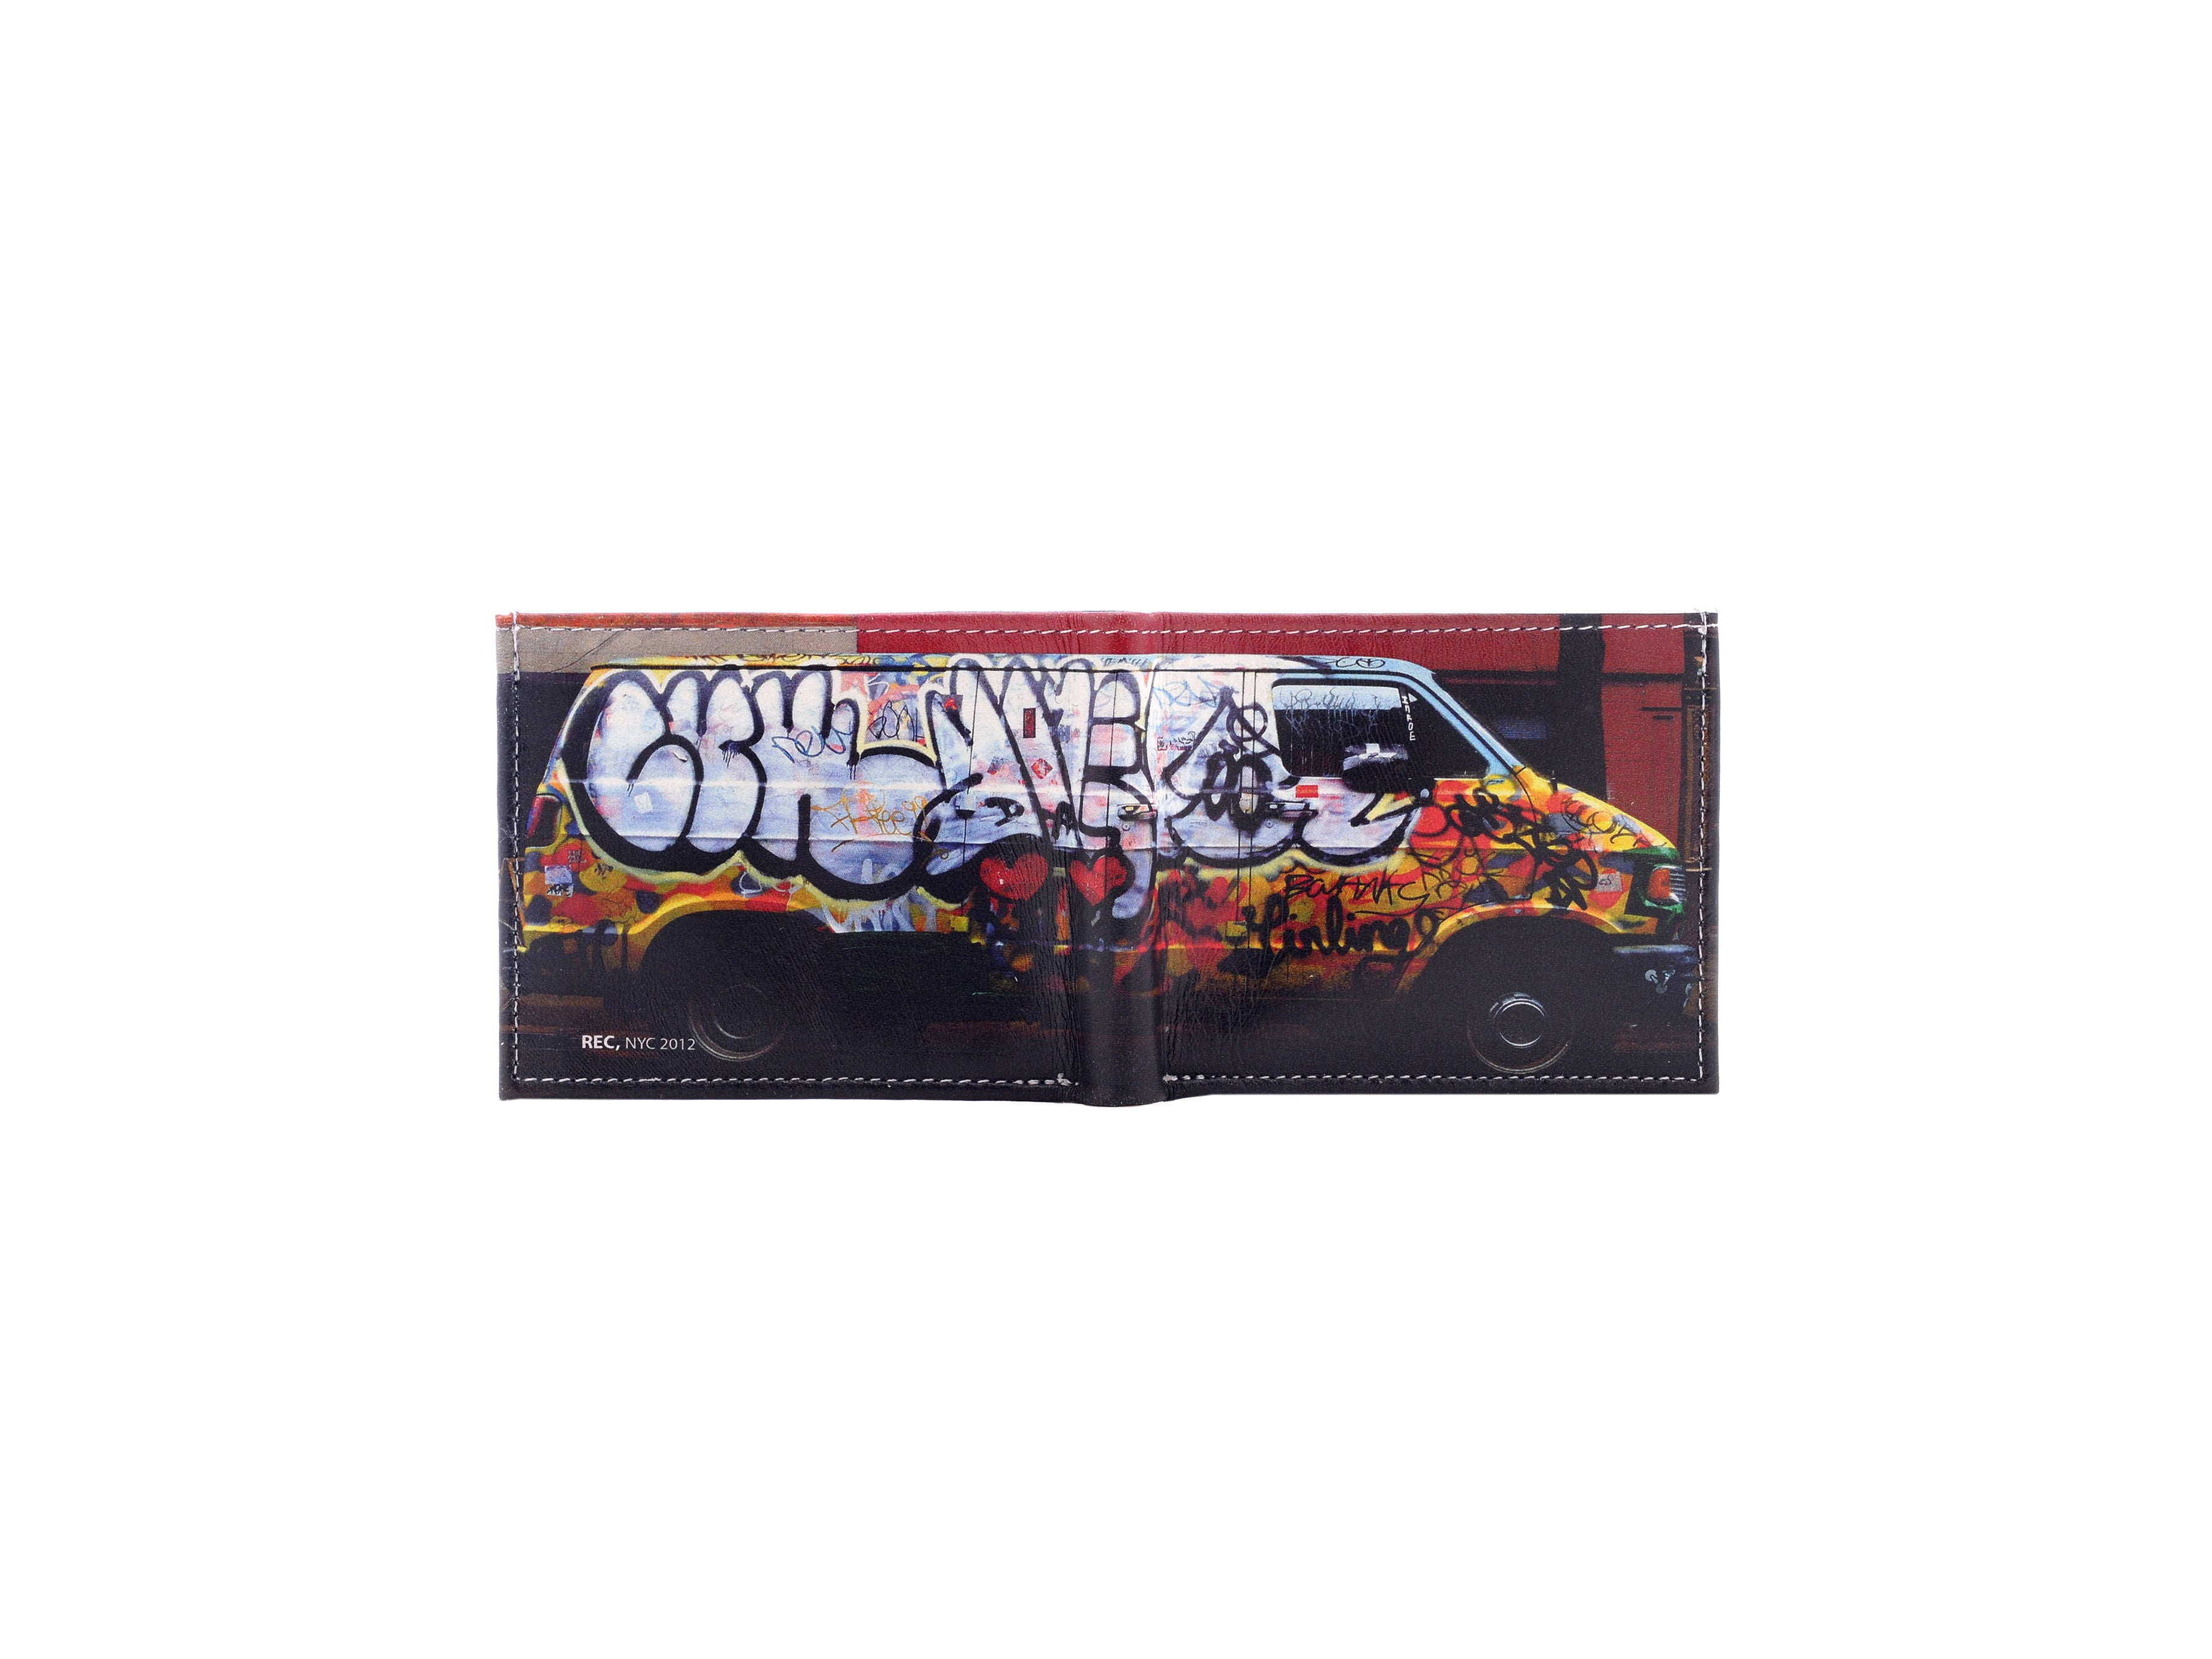 Leather Wallets - Graffiti Van - Photography